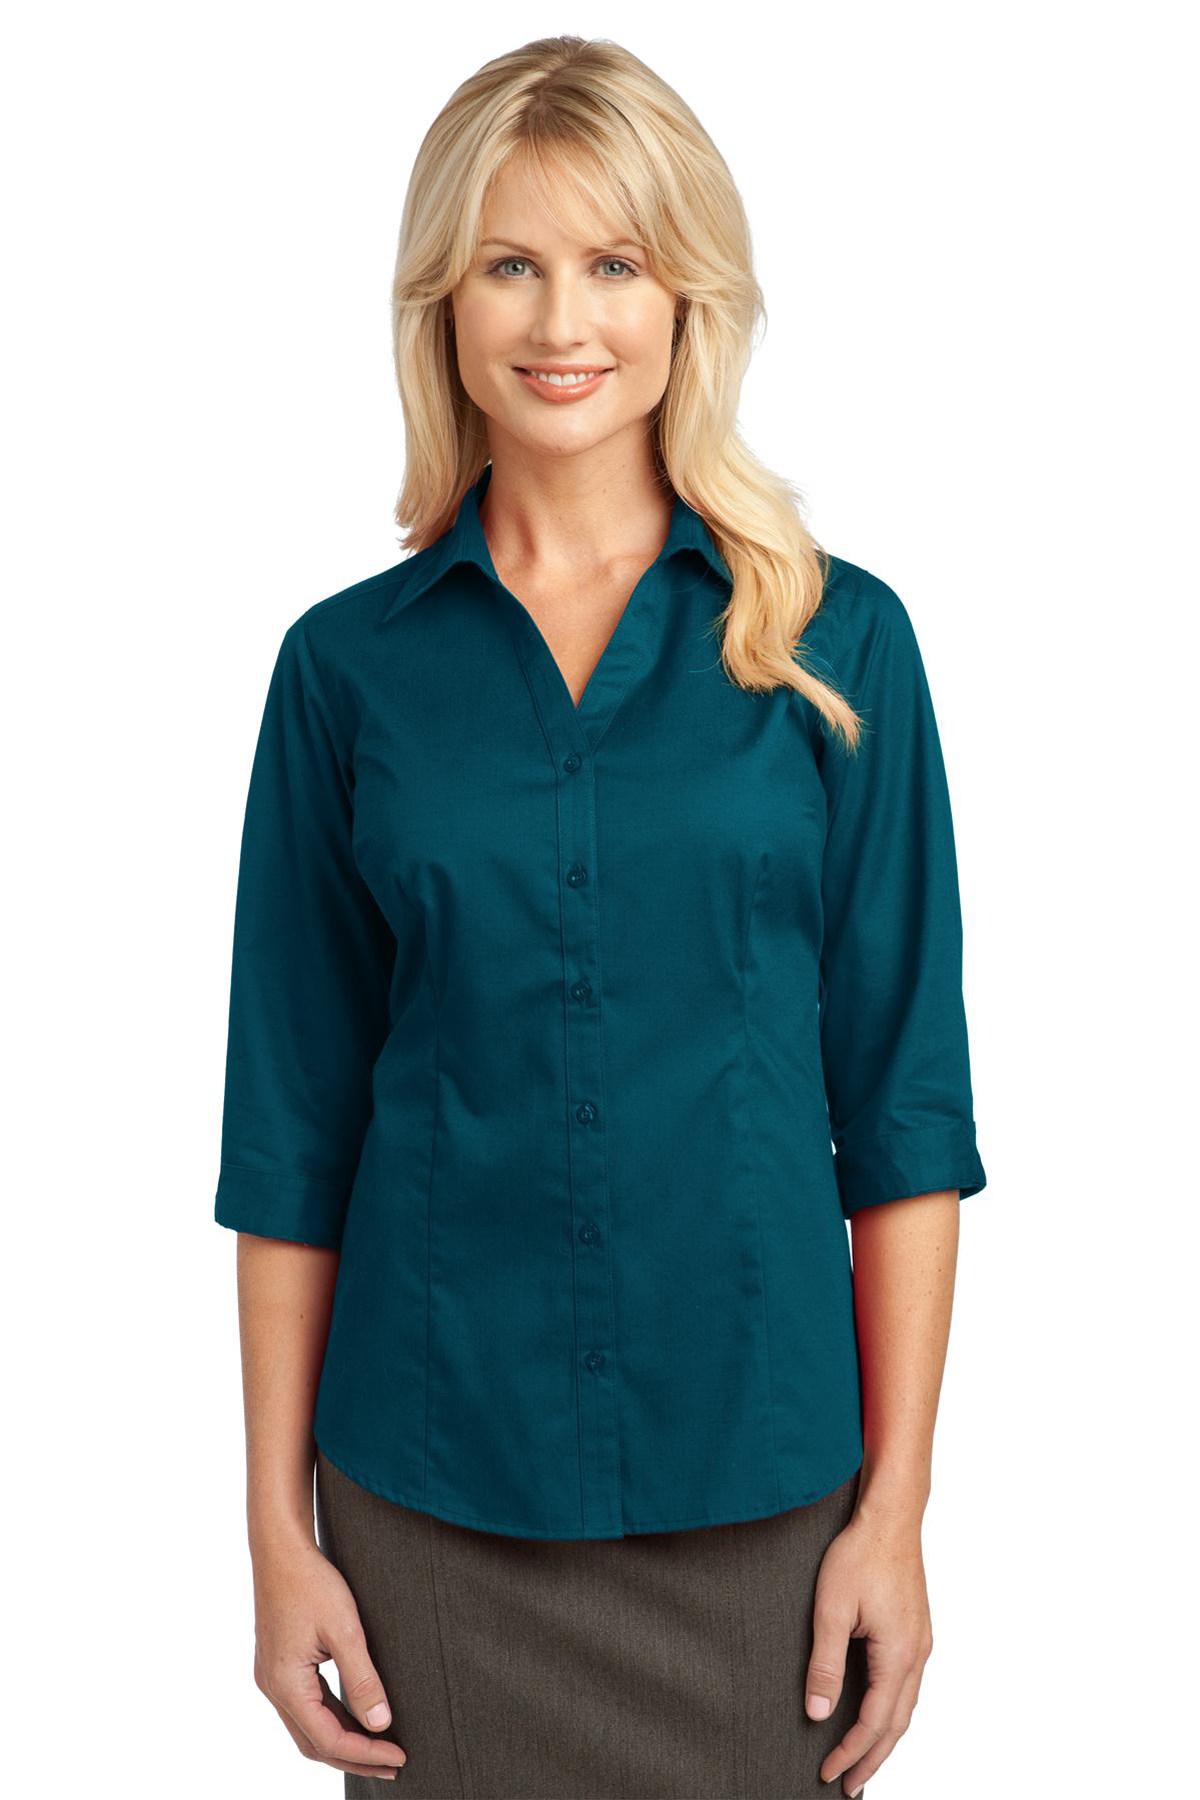 Woven-Shirts-Easy-Care-21